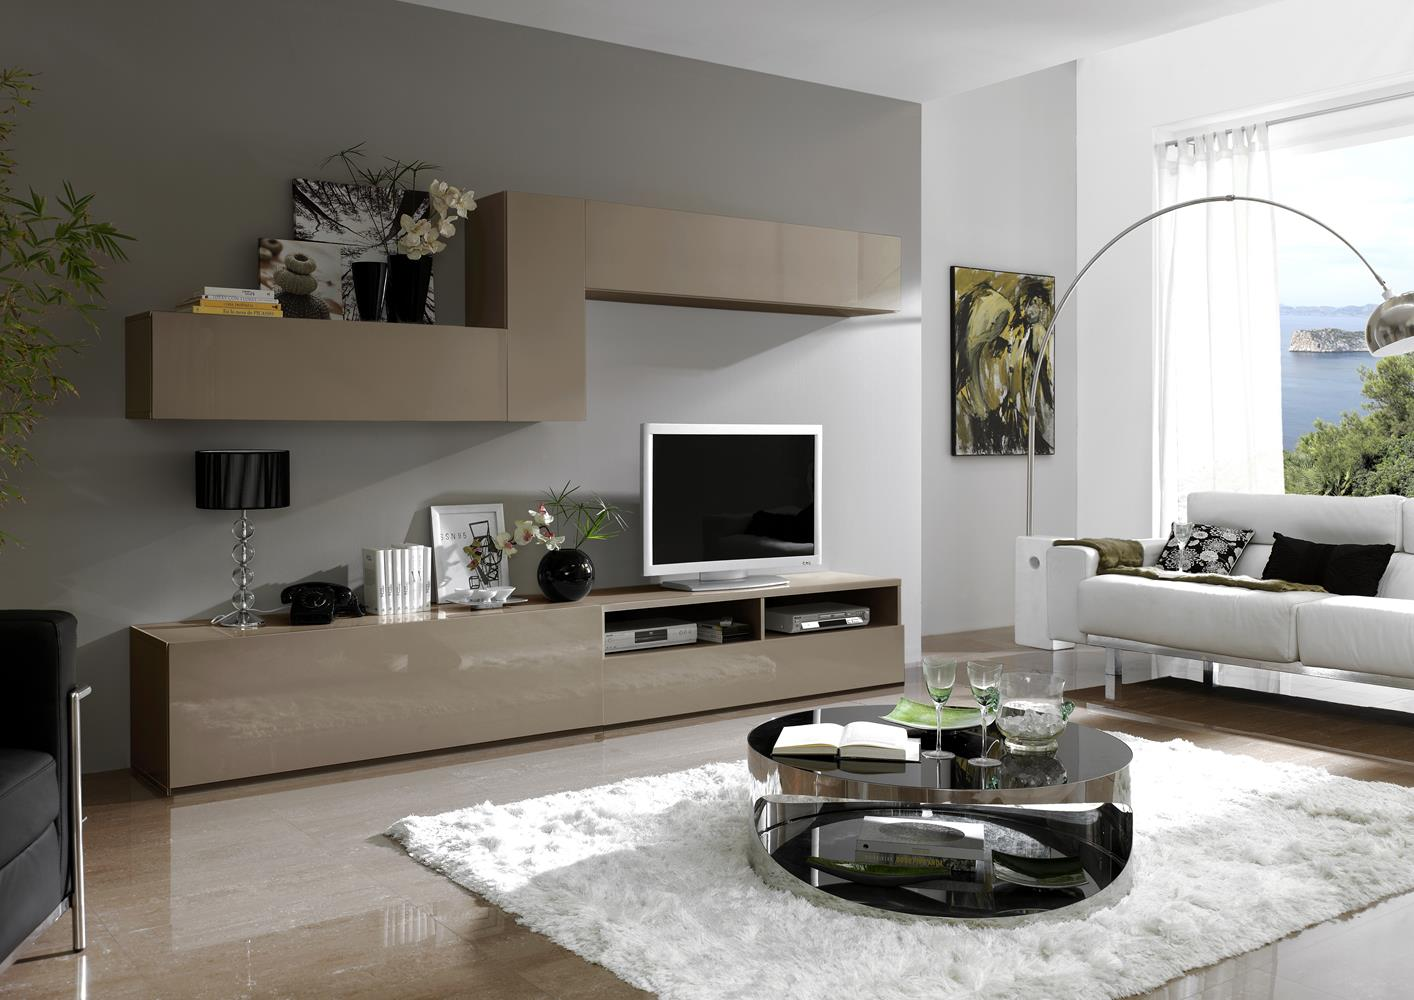 acheter votre composition murale contemporaine laqu e brun. Black Bedroom Furniture Sets. Home Design Ideas